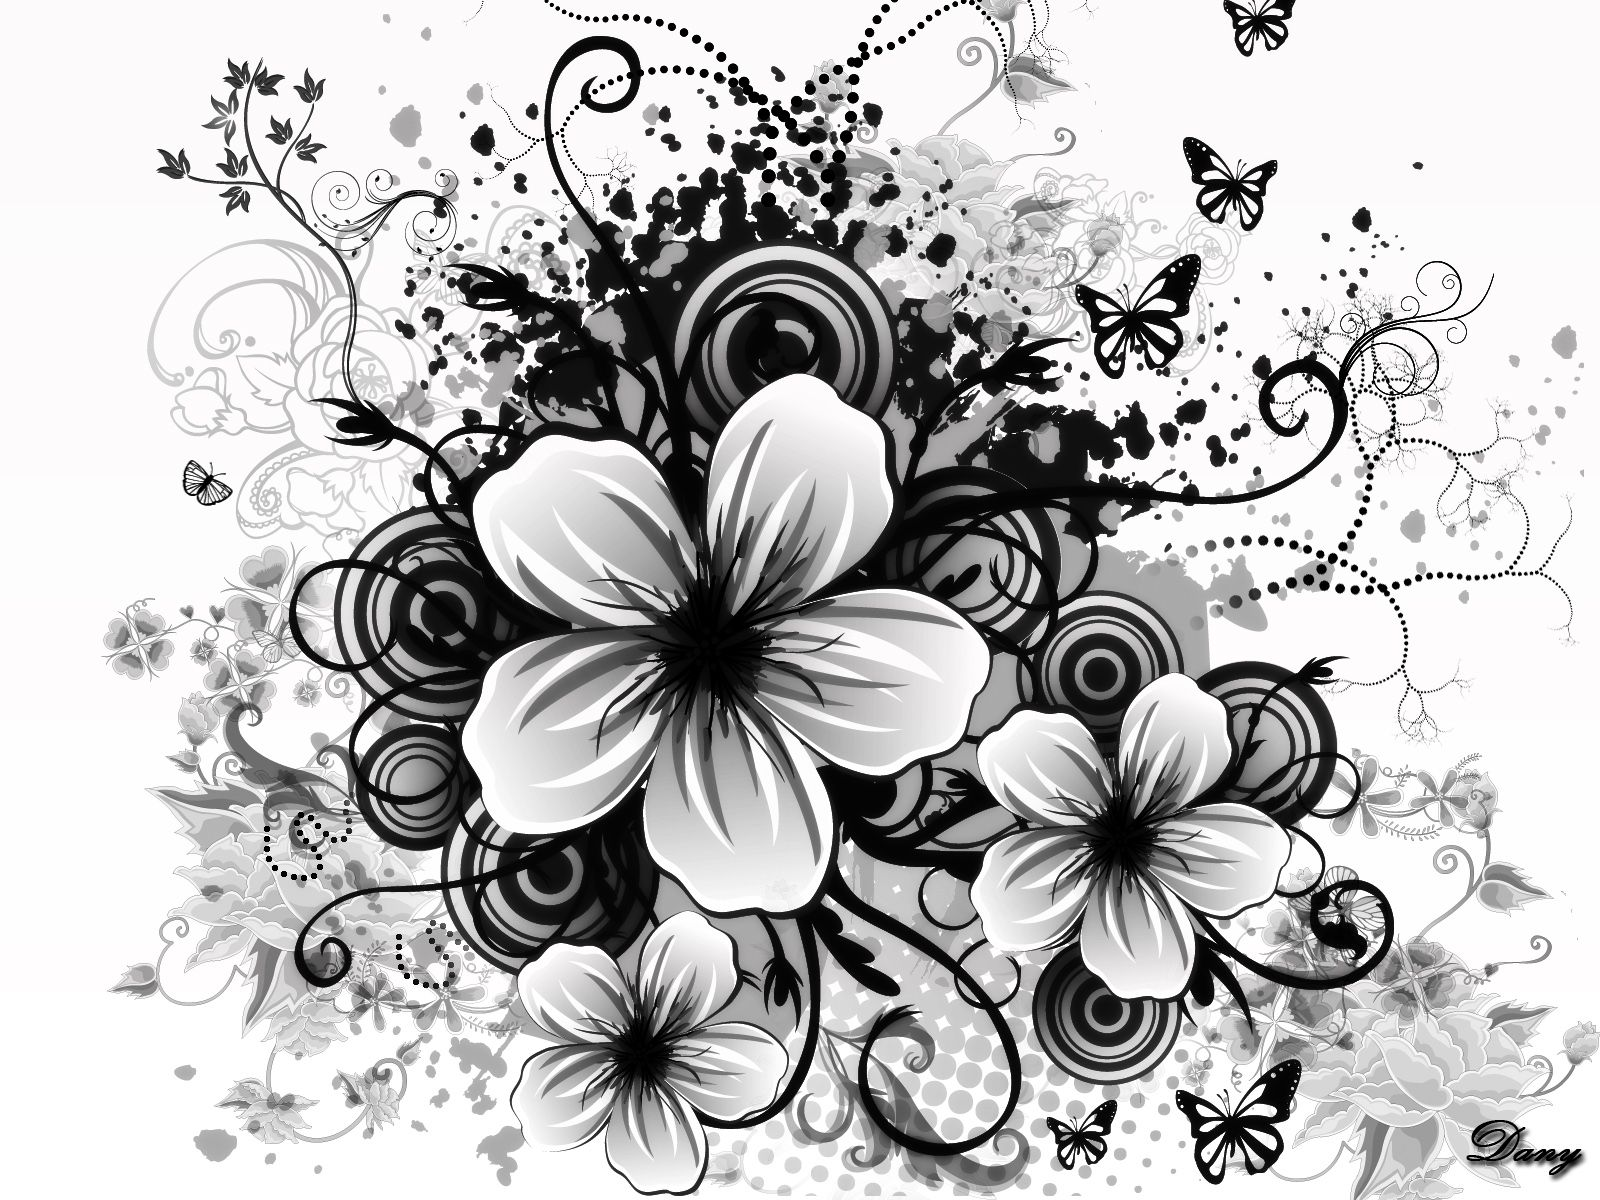 Flower+Drawings+in+Black+and+White 1215 033613